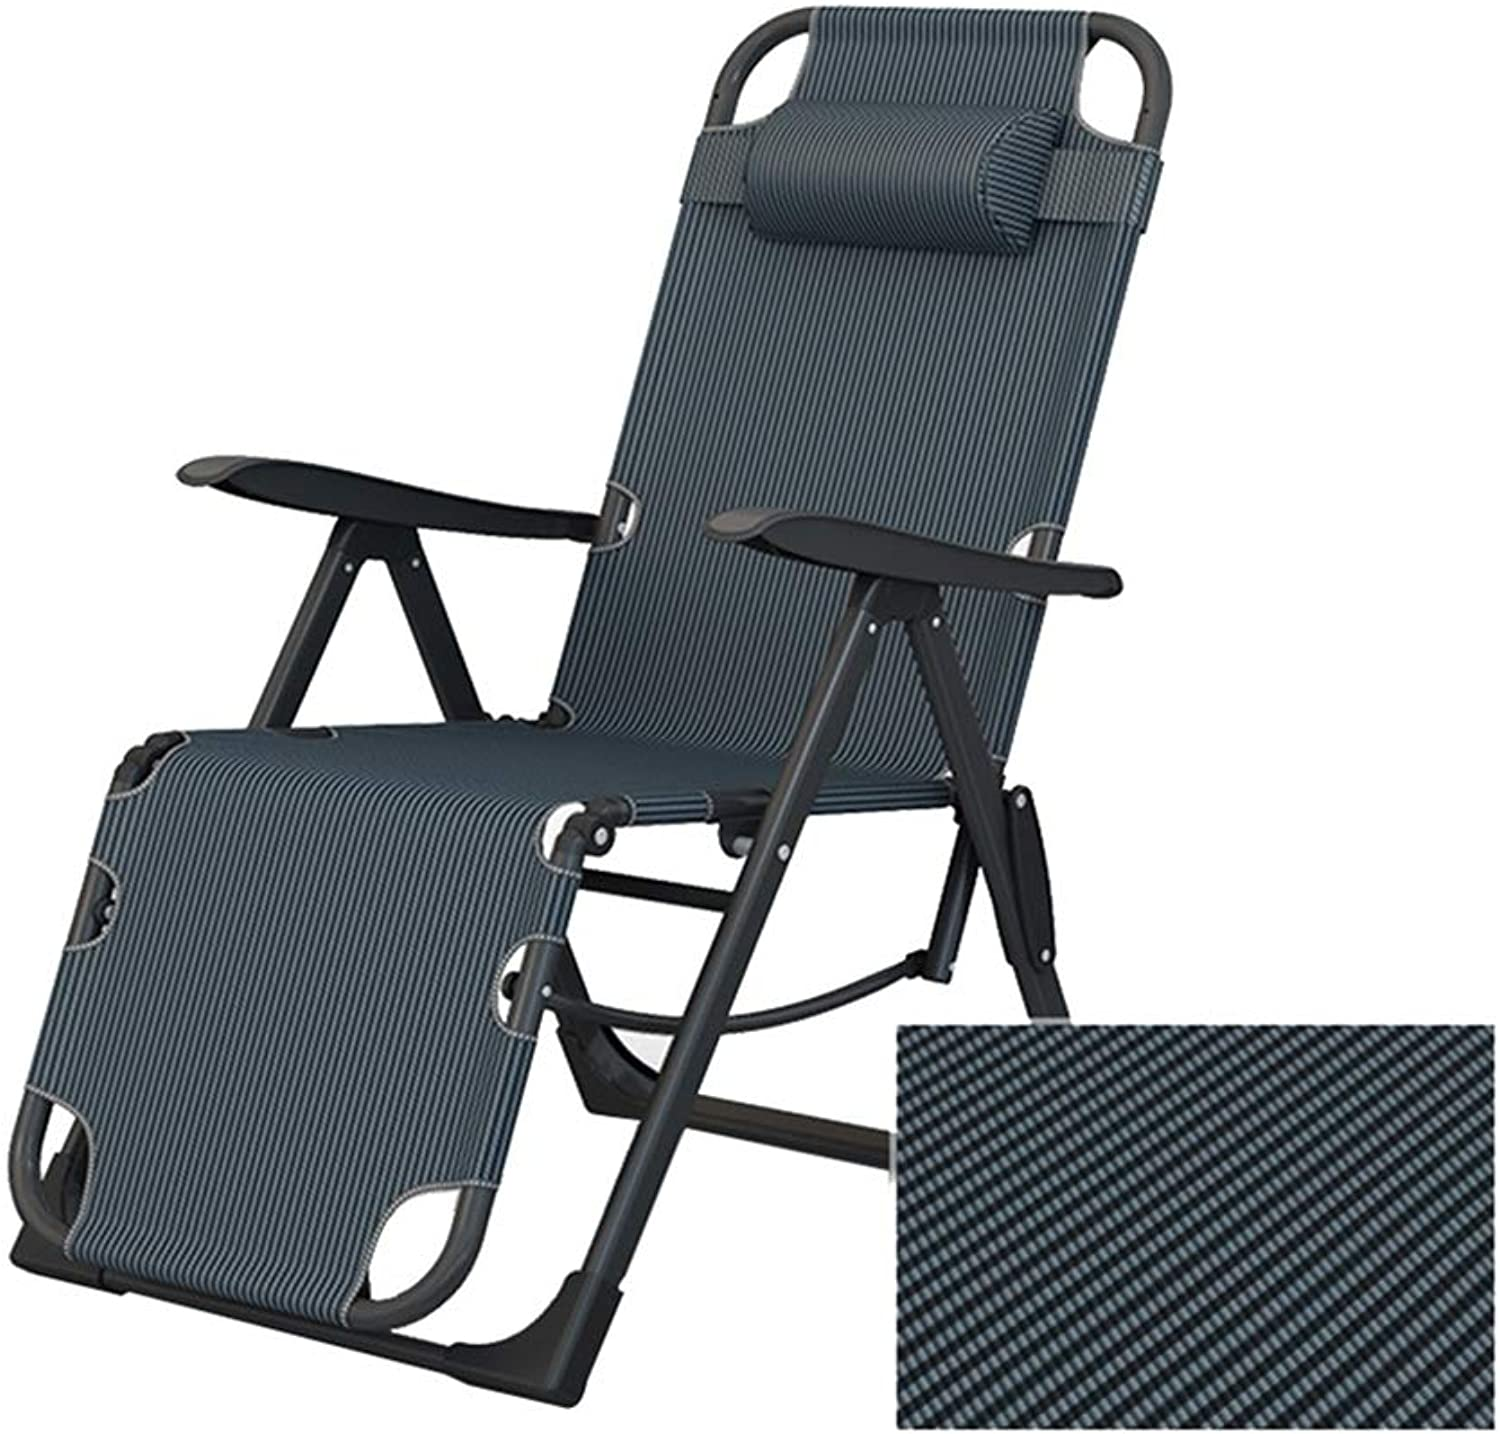 MEIDUO Rocking Chairs Portable Garden Sun Lounger, Folding Sun Bed Relaxing Reclining Chair, Summer Balcony Lounge Chair Single Relaxer Chair Office Nap Chair (color   1002)